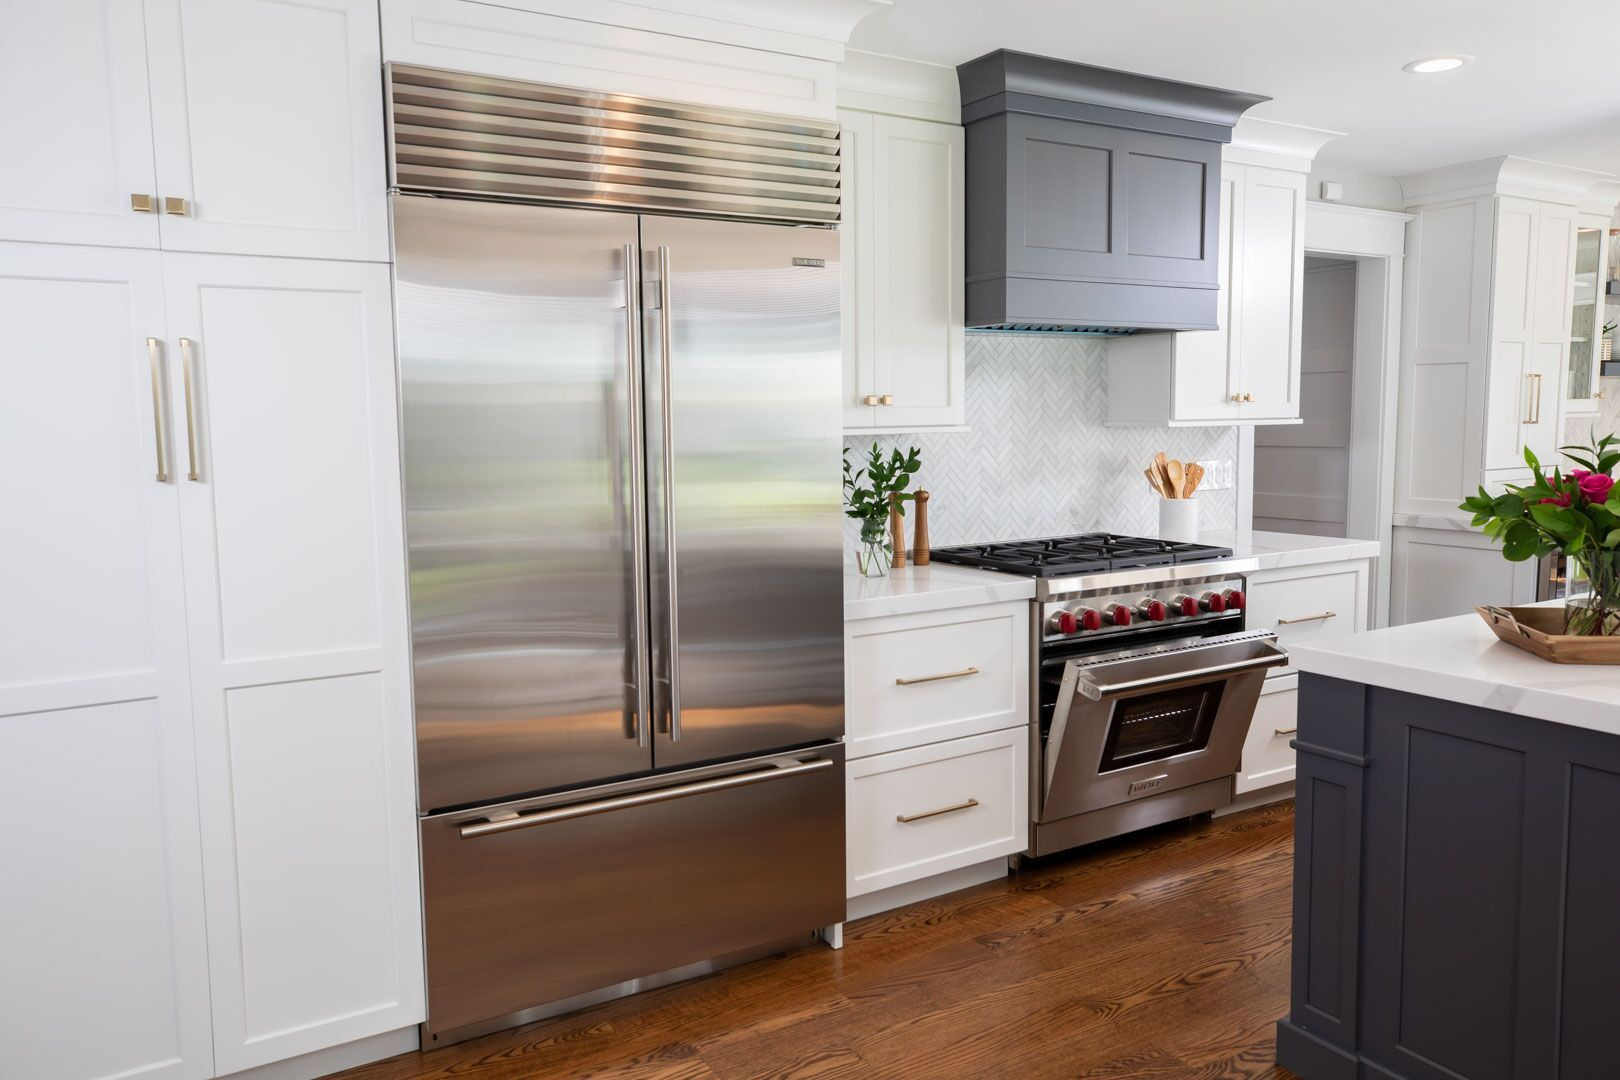 Loving The Island Life Appliance Financing Appliance Service In Pittsburgh Pa Area Updated Kitchen Designs Kitchen Design Updated Kitchen